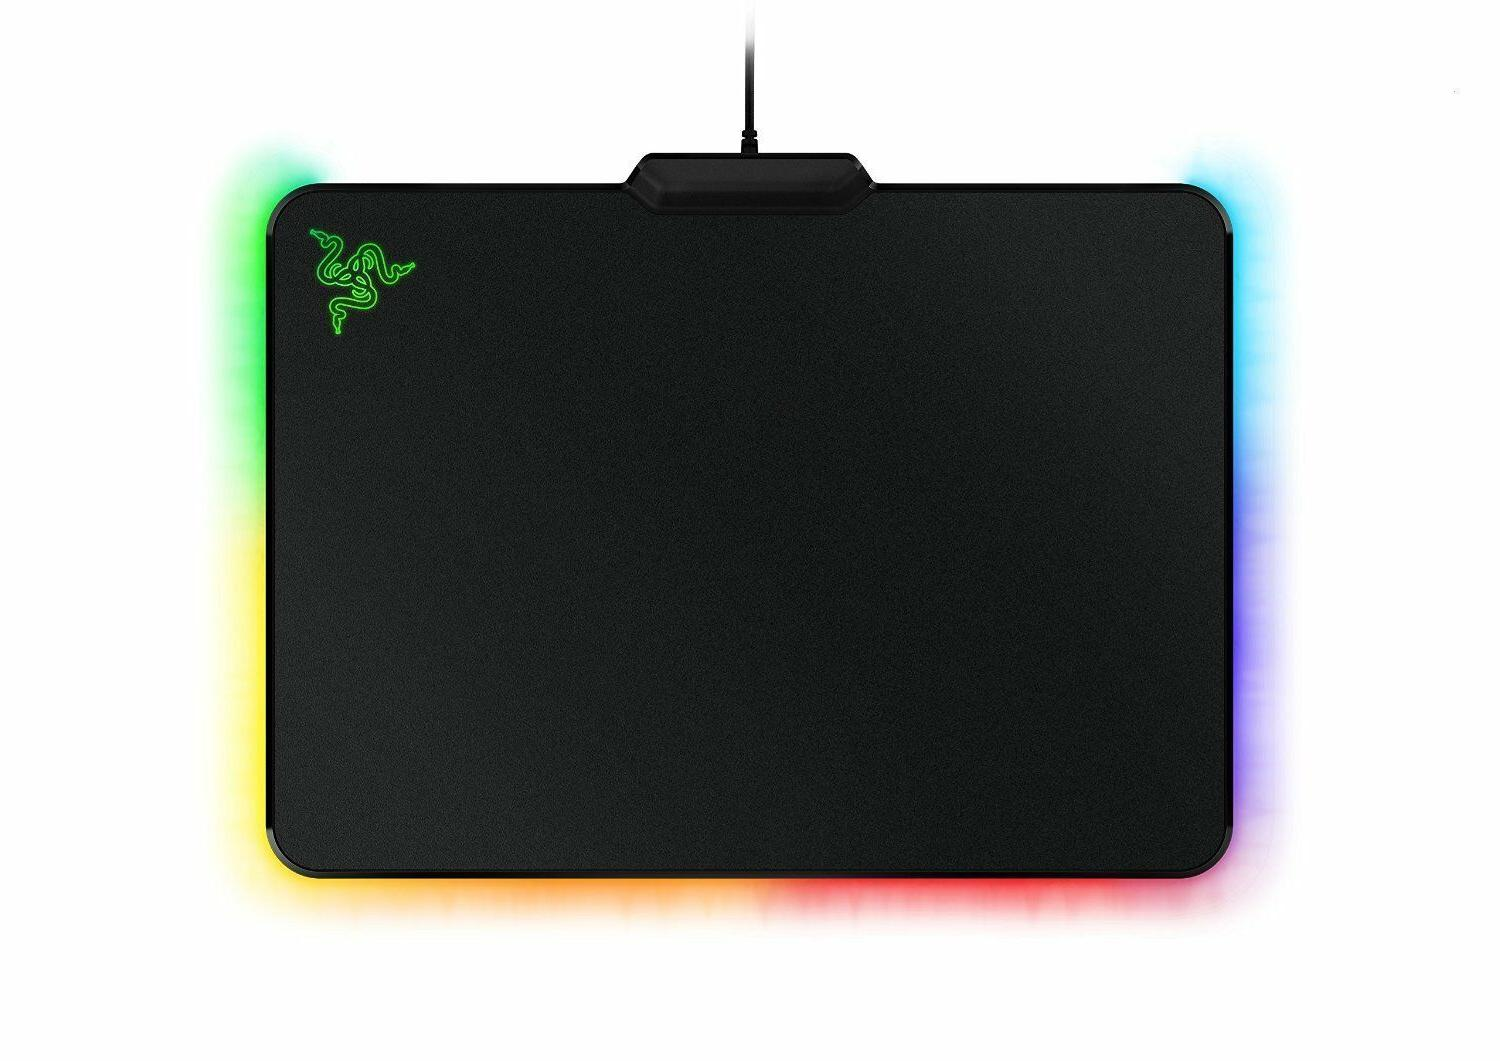 Razer Firefly Hard Gaming Mouse